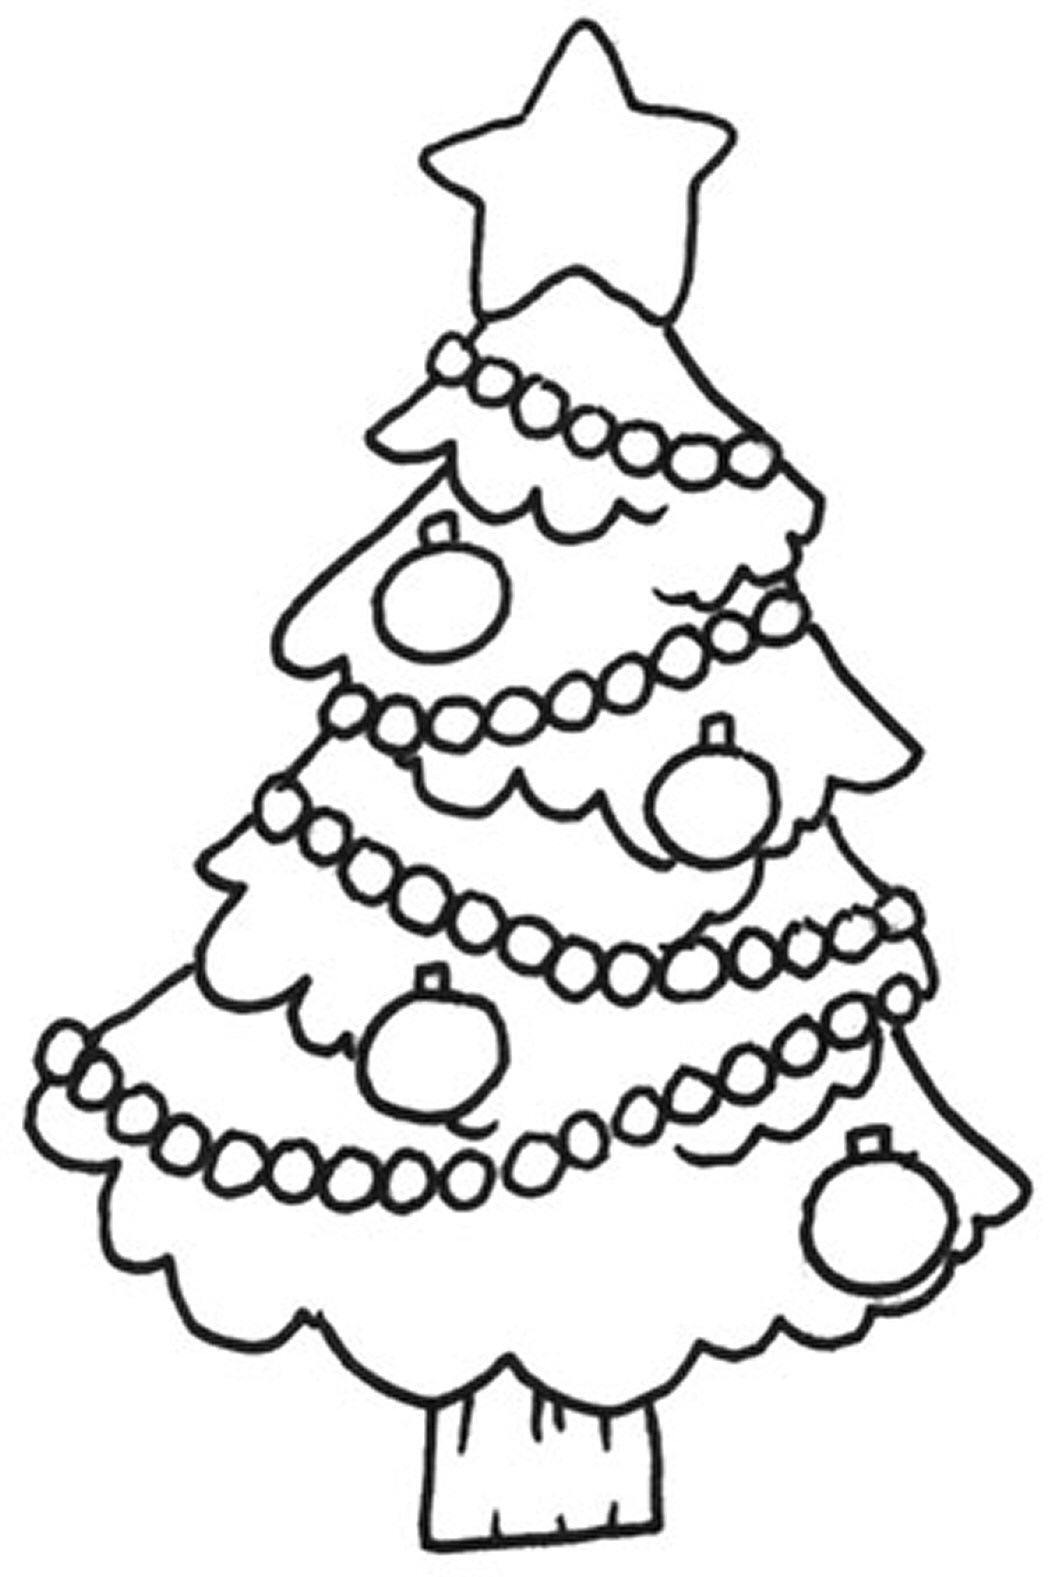 free printable christmas tree coloring pages for kids. Black Bedroom Furniture Sets. Home Design Ideas